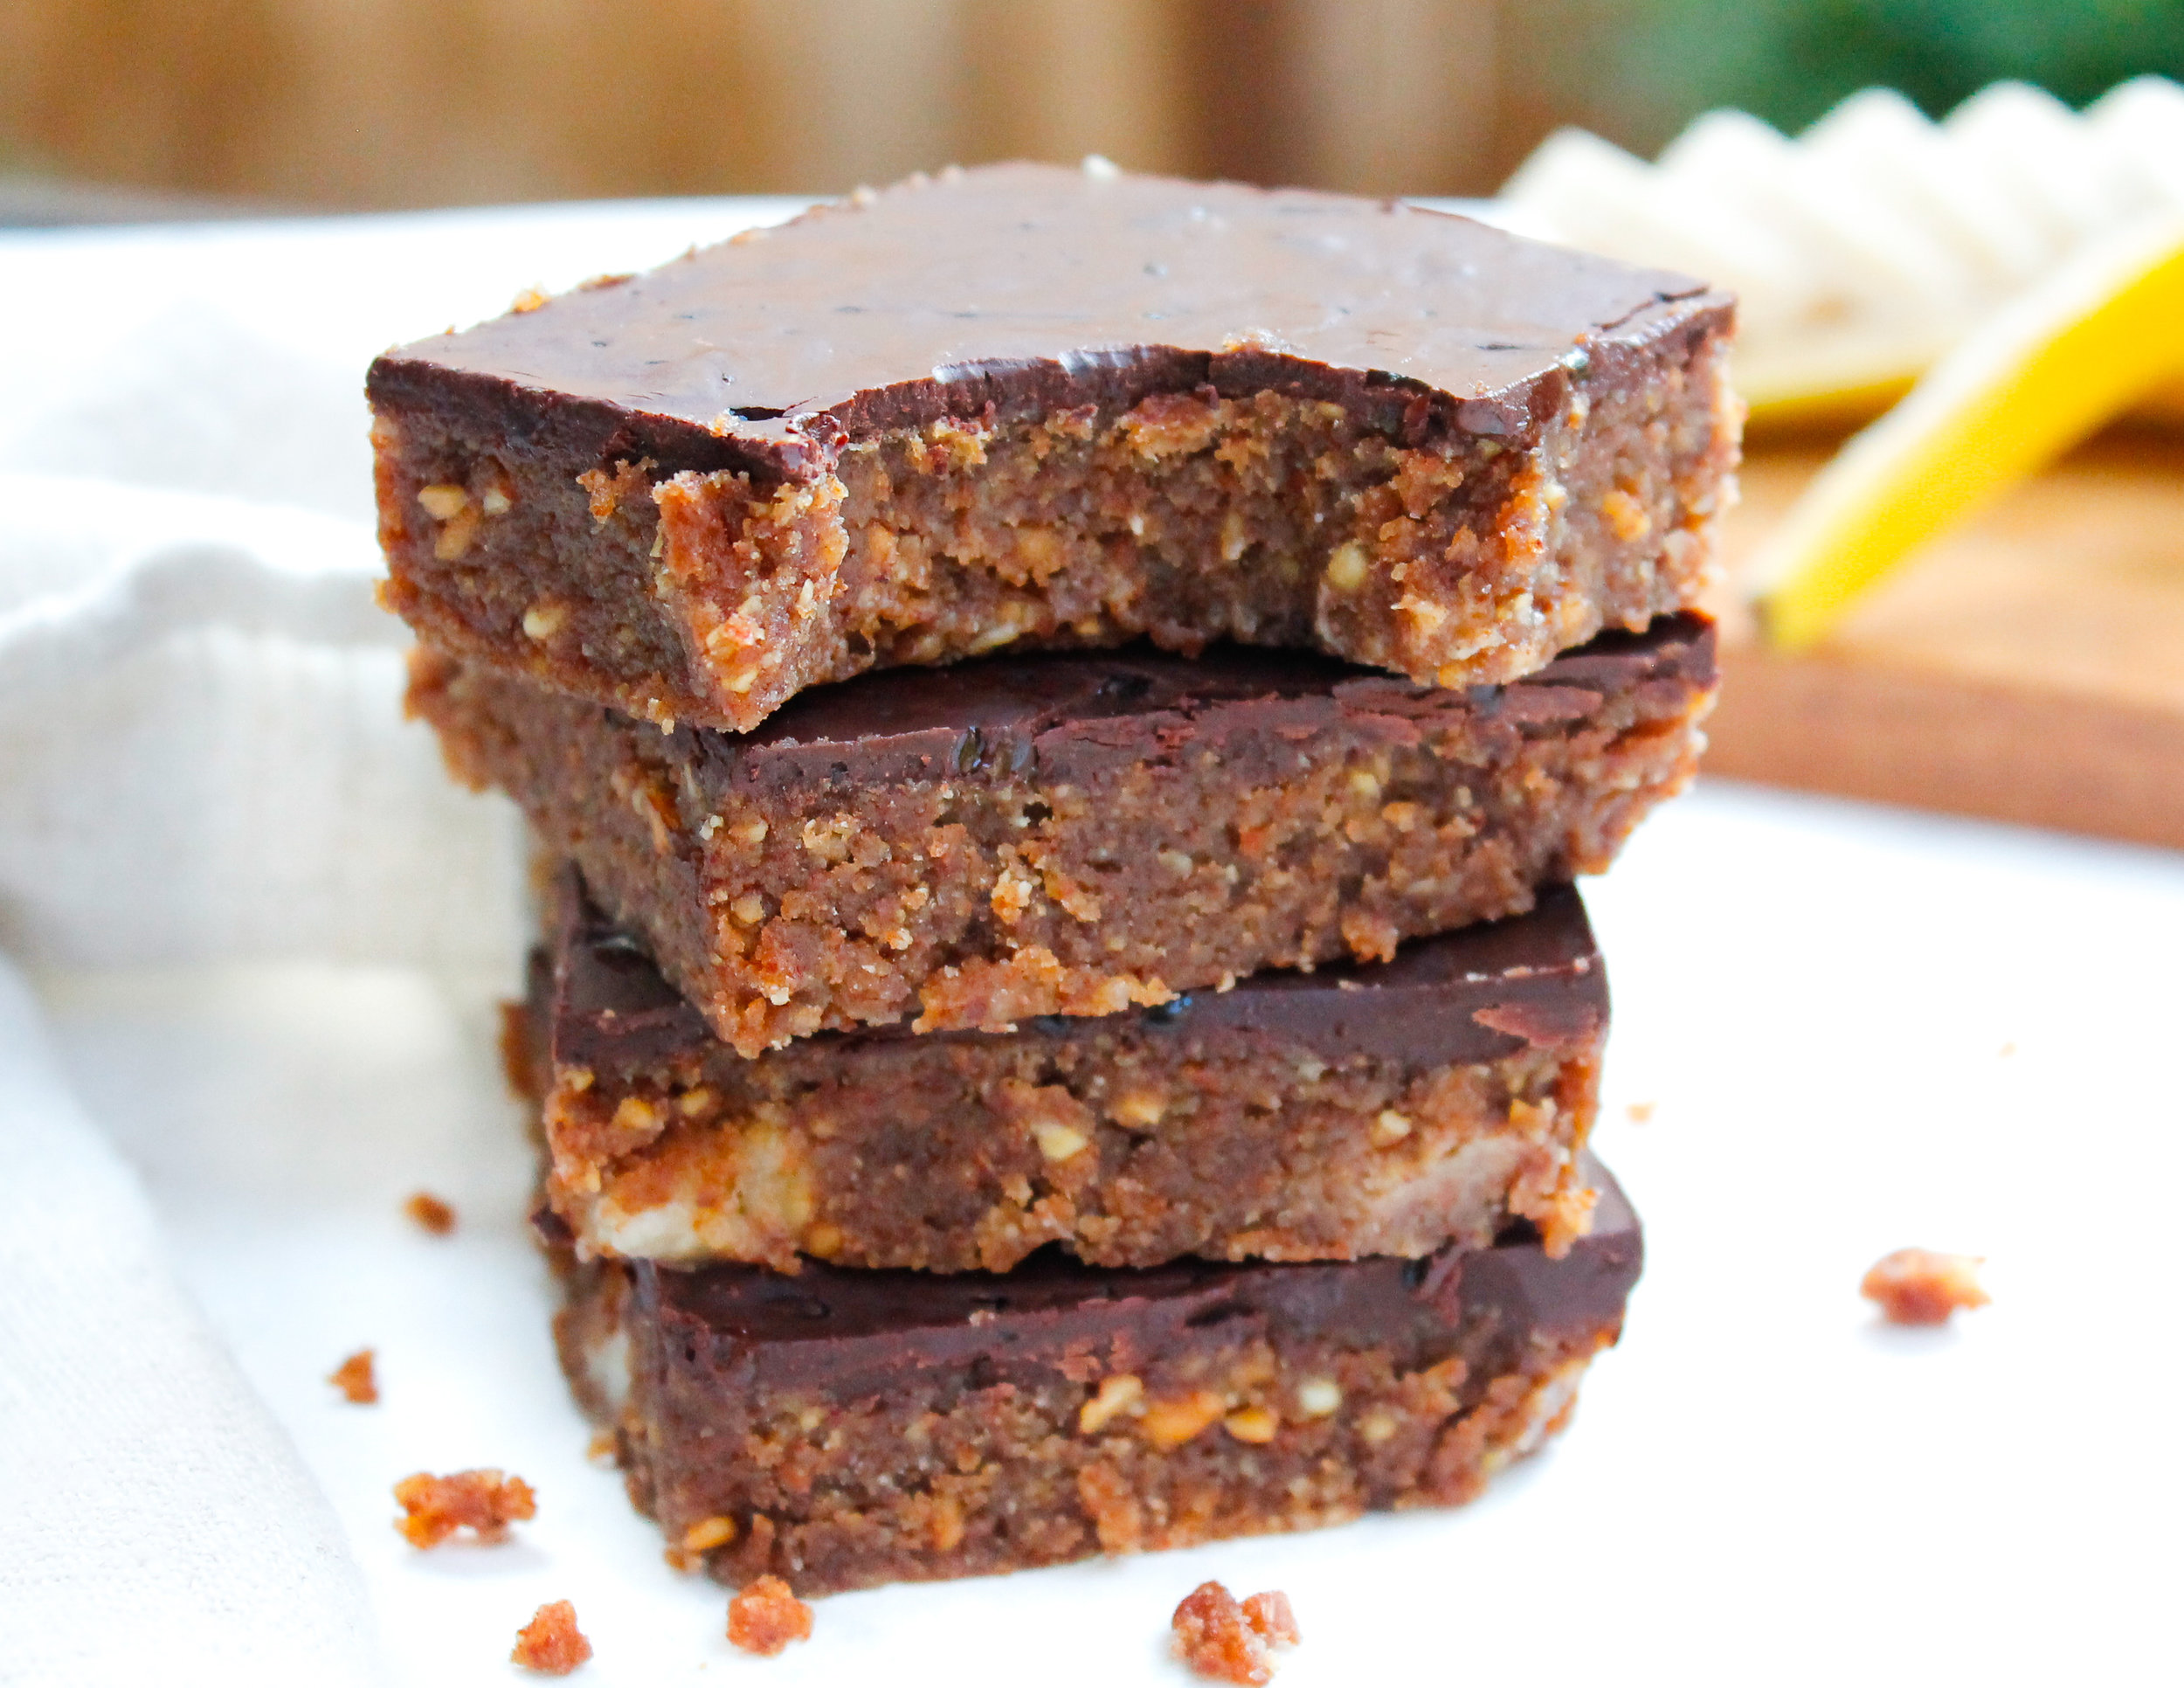 Paleo + Vegan Banana Bread No-Bake Bars || These bars are gluten free, grain free, dairy free, refined sugar free AND easily made Specific Carbohydrate Diet friendly by omitting the chocolate topping. These paleo no bake bars are easy and delicious! The perfect on-the-go and healthy kid-friendly creation you can whip up in less than 30 minutes. #paleobars #paleosnackrecipes #paleosweettreats